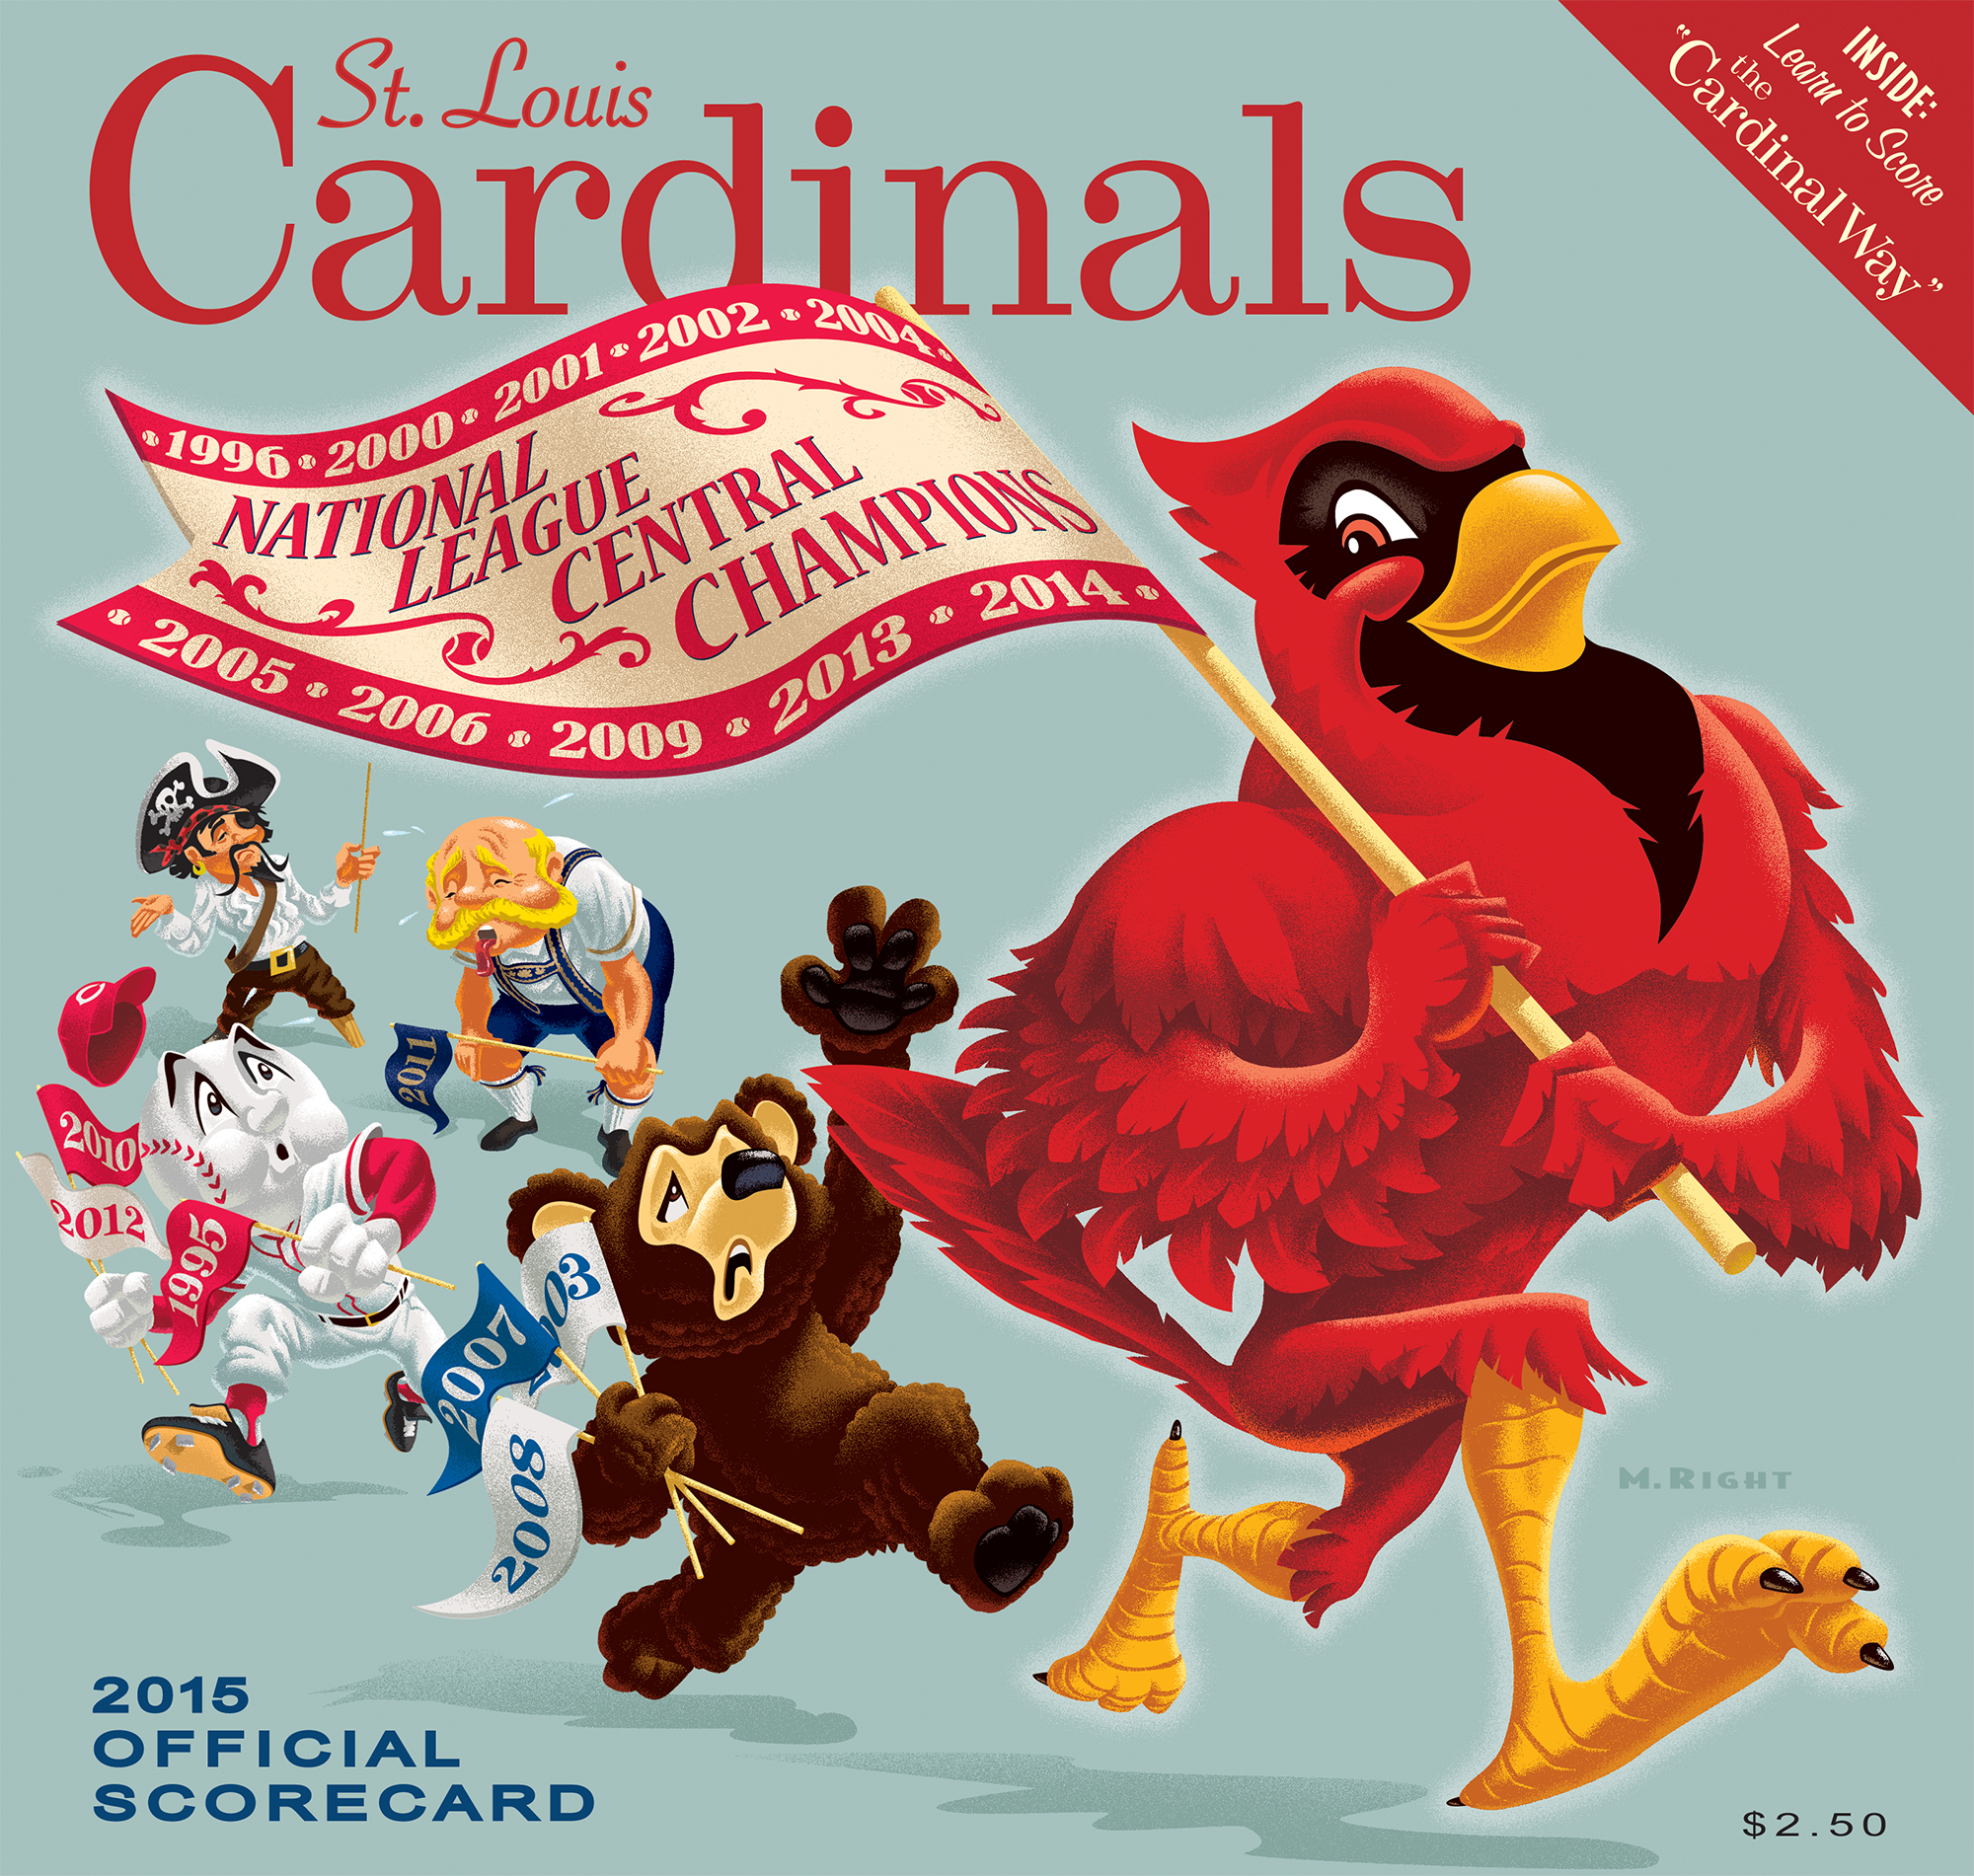 2015 Cardinals Official Scorecard